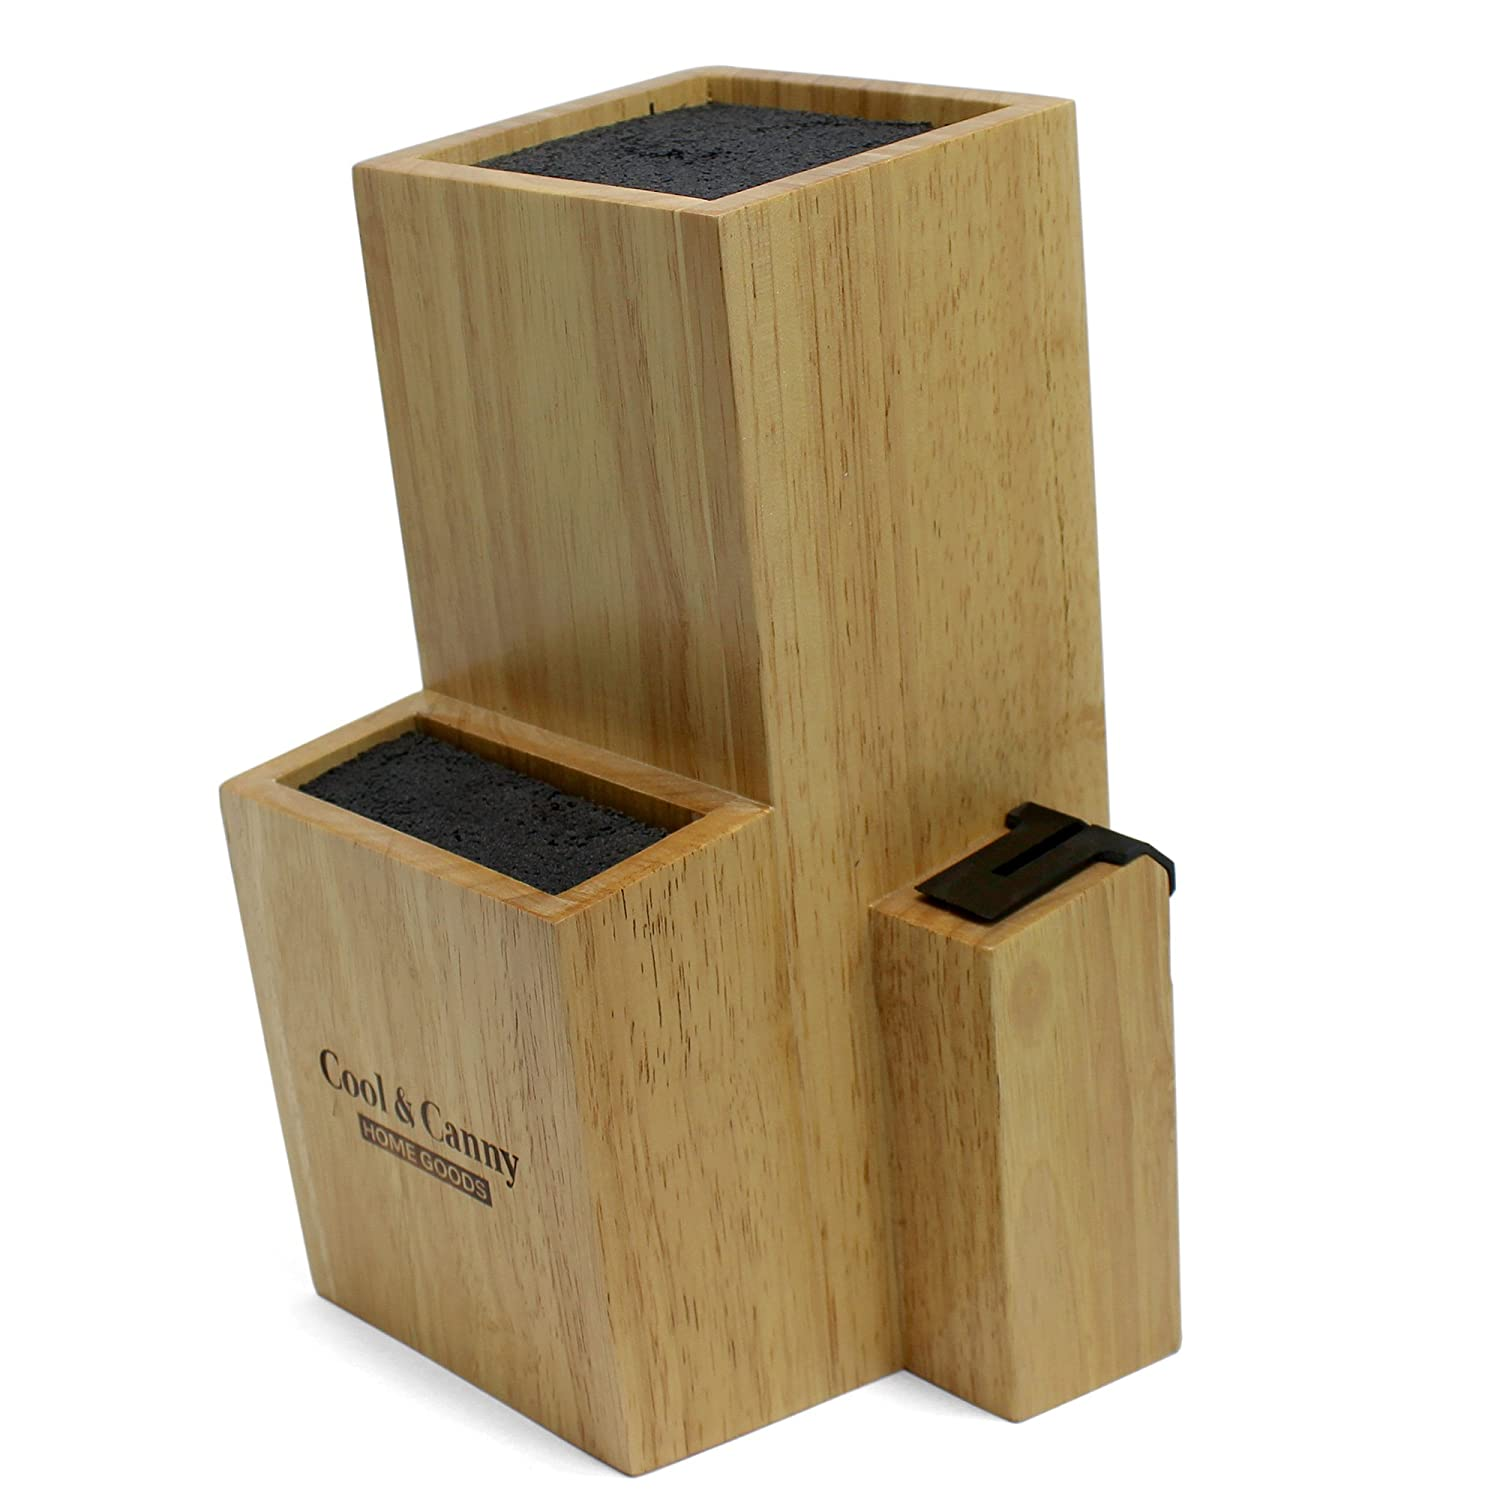 Cool & Canny 2 Tier Universal Bamboo Knife Block with Knife Sharpener